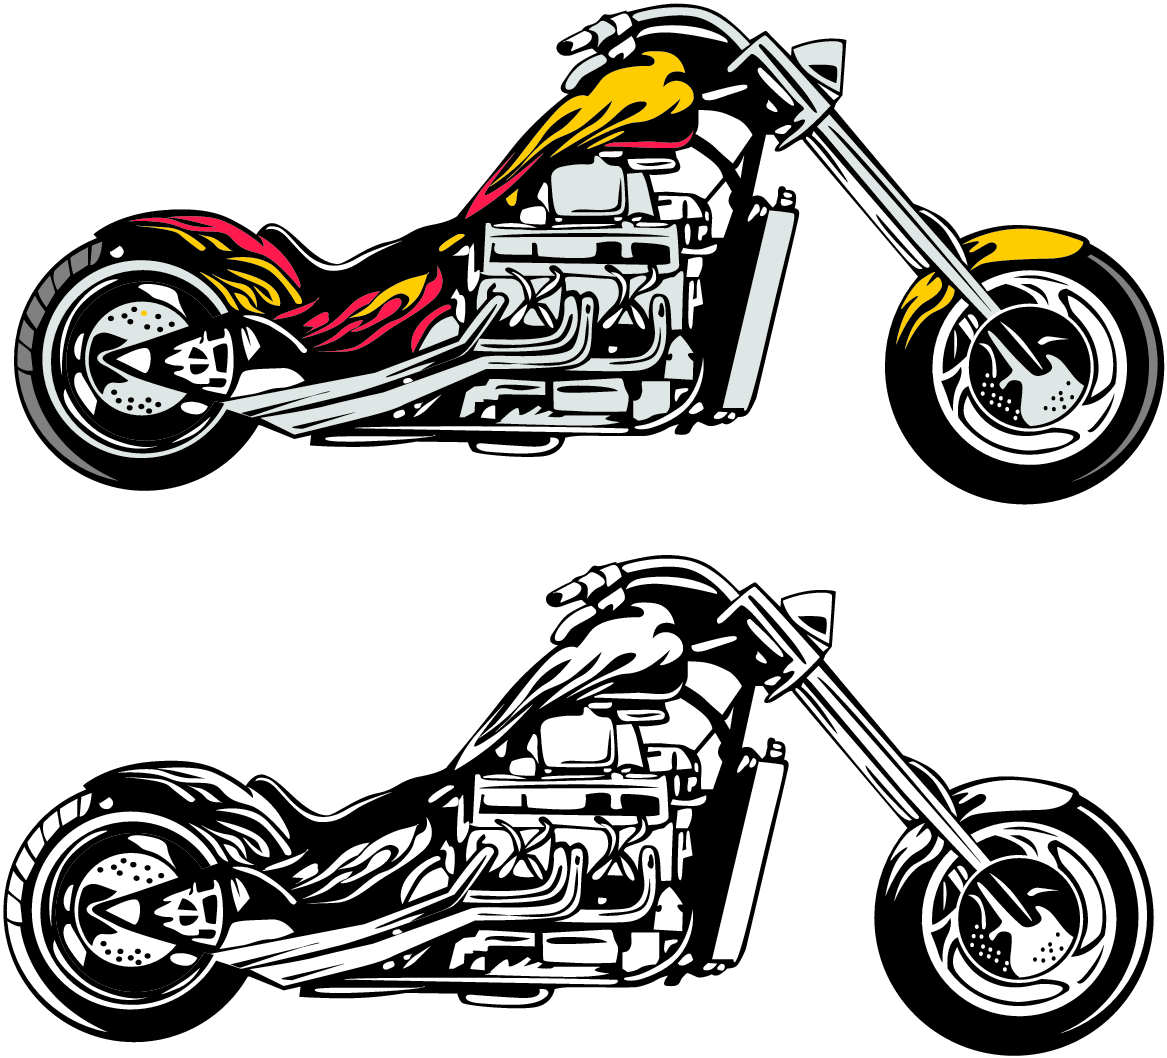 Harley Shovelhead Bikes And Parts besides Eagle Stickers Trucks as well Harley Davidson Bikers Choice in addition Desenhos Para Motos furthermore Guidon Mcs Early Glide Style Bar Avec Empreintes Chrome p 336144. on custom harley davidson motorcycles